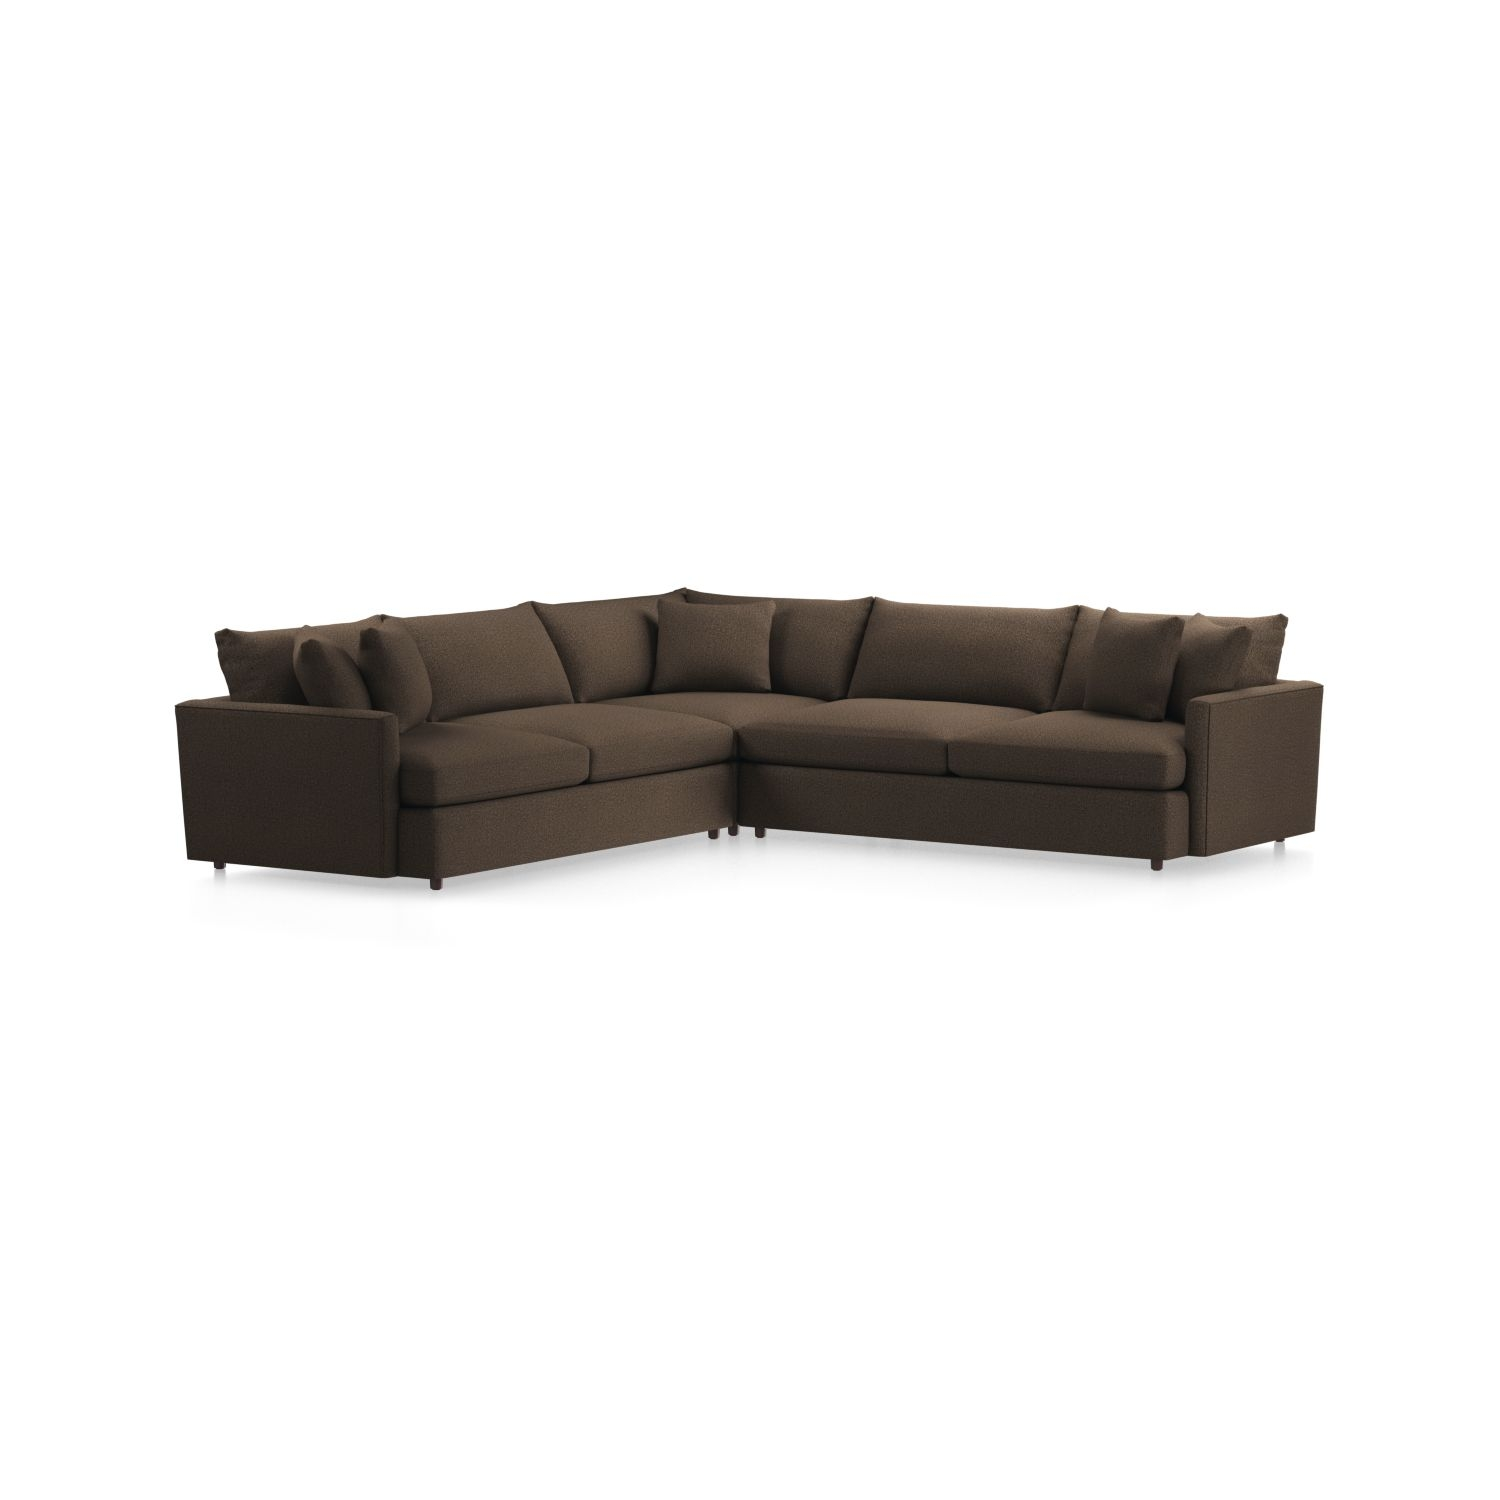 Lounge Ii 3 Piece Sectional Sofa + Reviews | Crate And Barrel With Regard To Glamour Ii 3 Piece Sectionals (View 12 of 25)